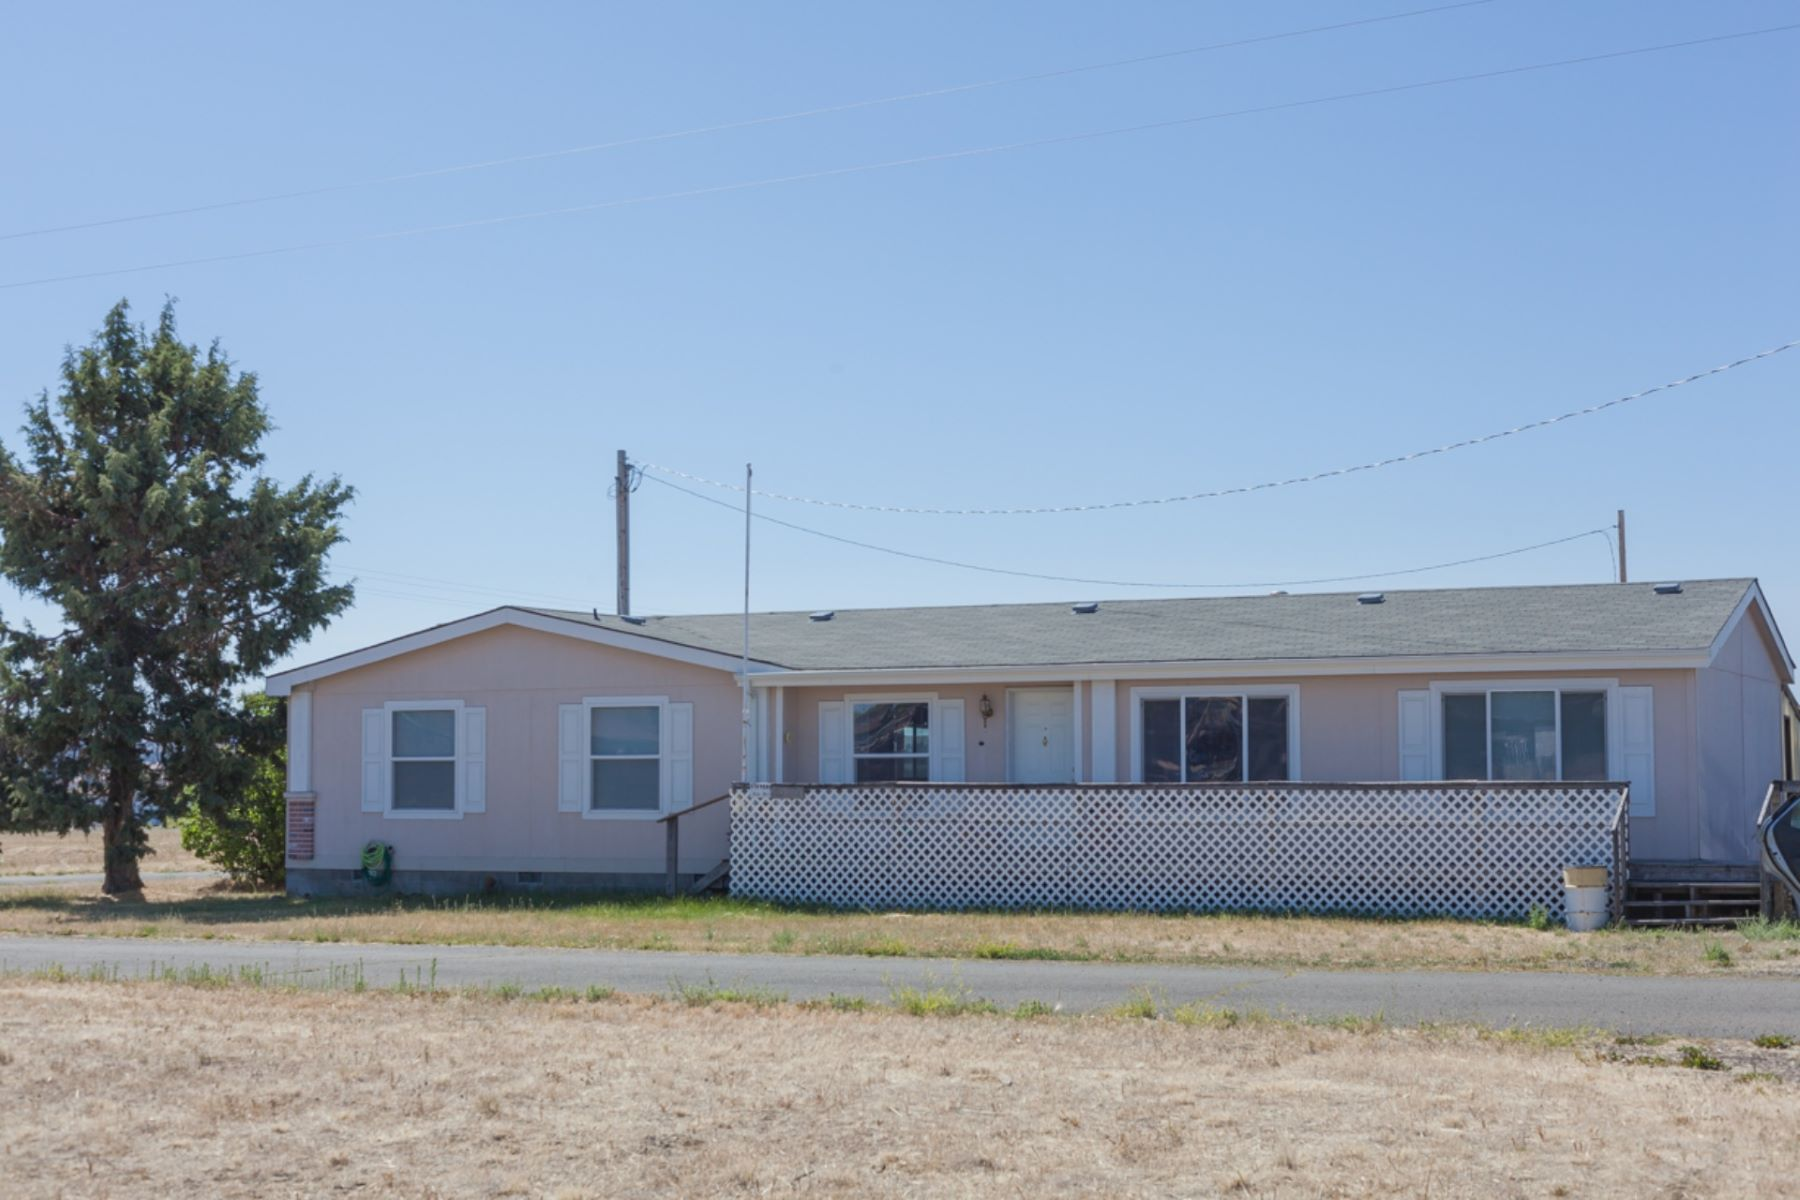 Single Family Homes for Active at 93488 3rd Street - All Lots Included 93488 3rd Street Shaniko, Oregon 97057 United States